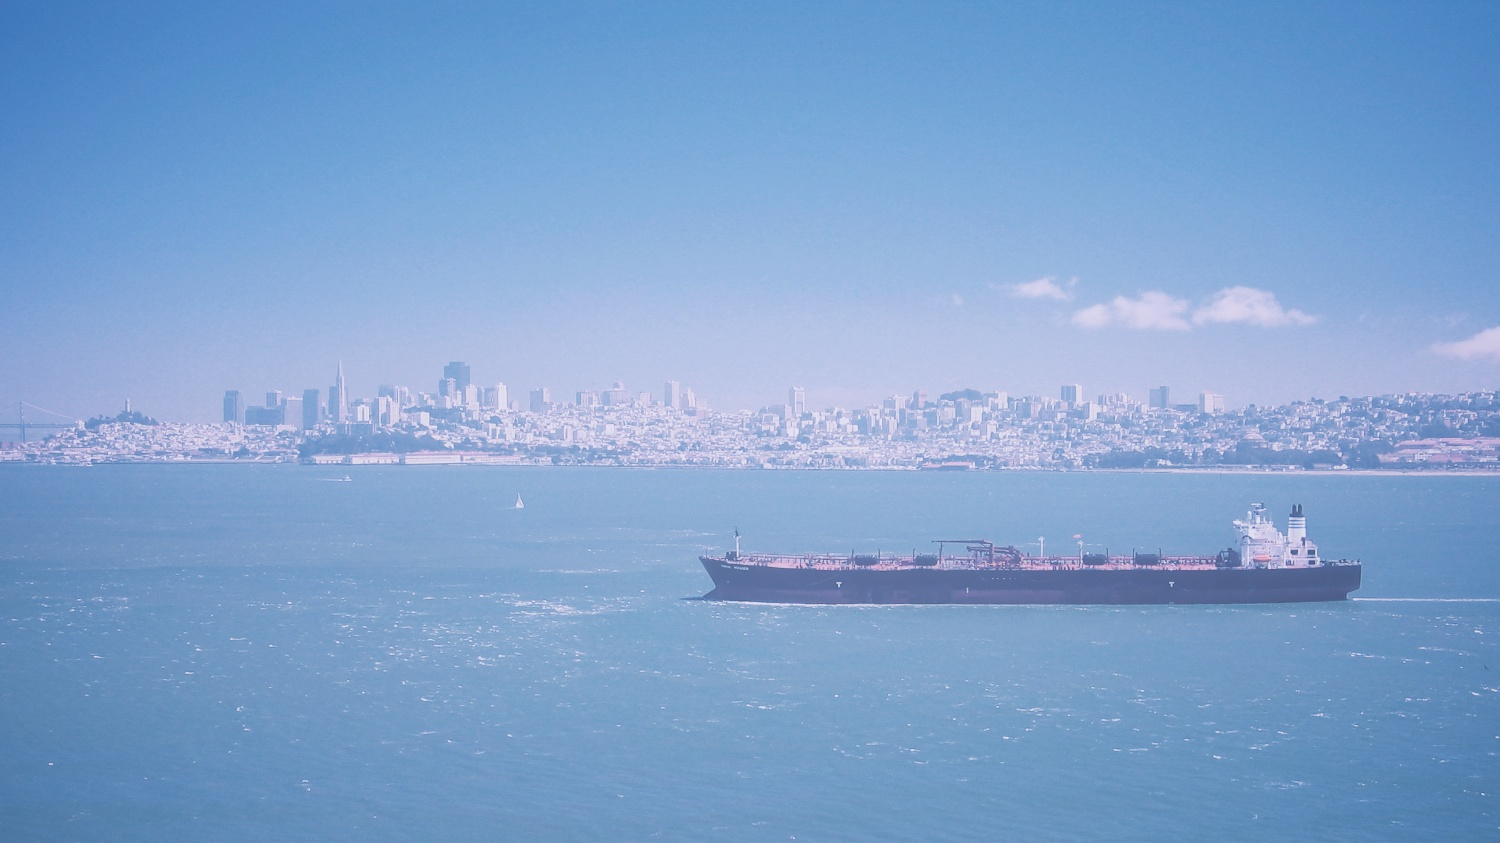 A cargo ship travels in the San Francisco Bay with the city skyline in the background